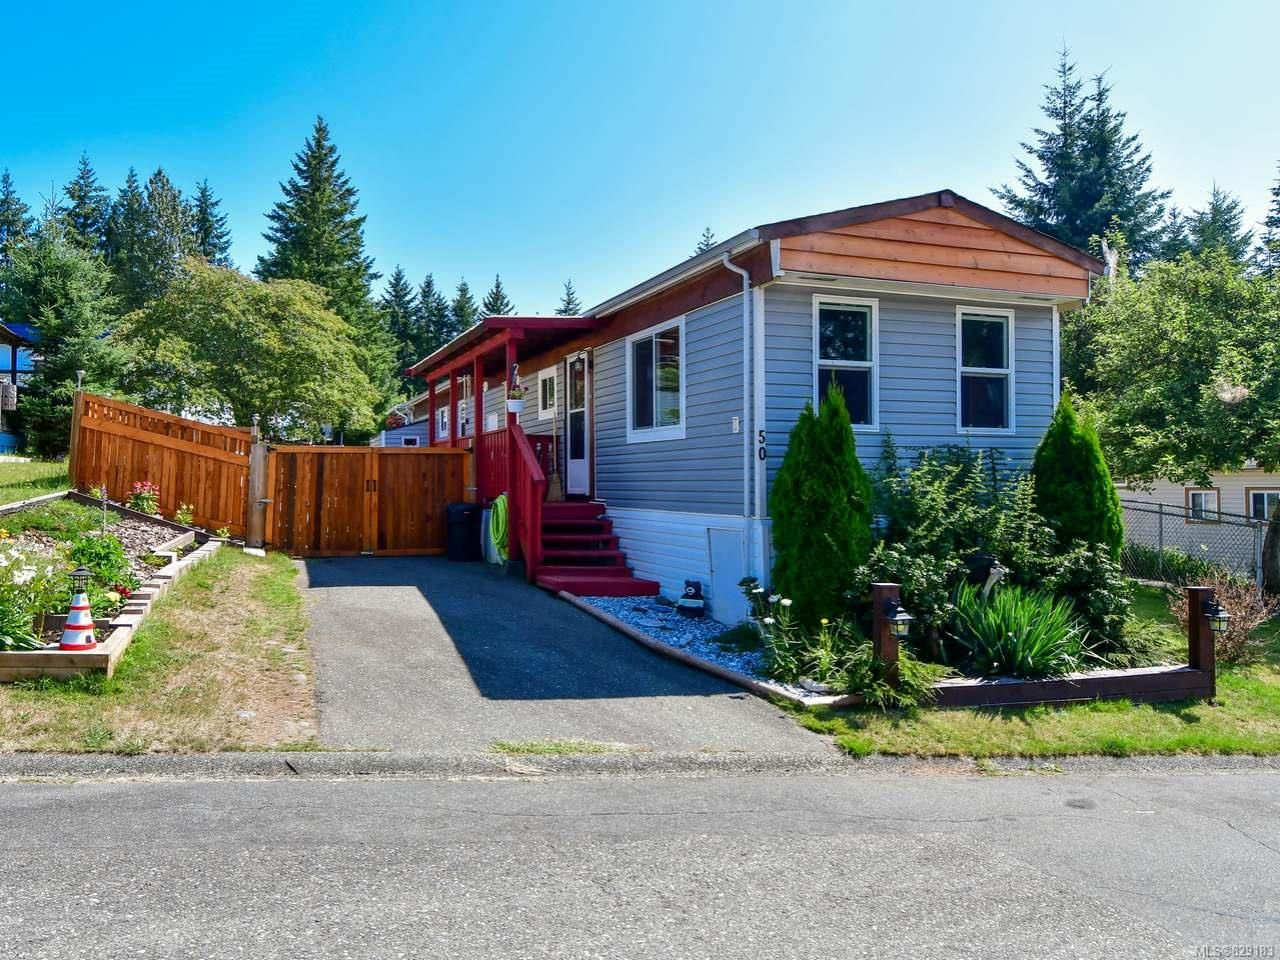 Main Photo: 50 1160 Shellbourne Blvd in CAMPBELL RIVER: CR Campbell River Central Manufactured Home for sale (Campbell River)  : MLS®# 829183